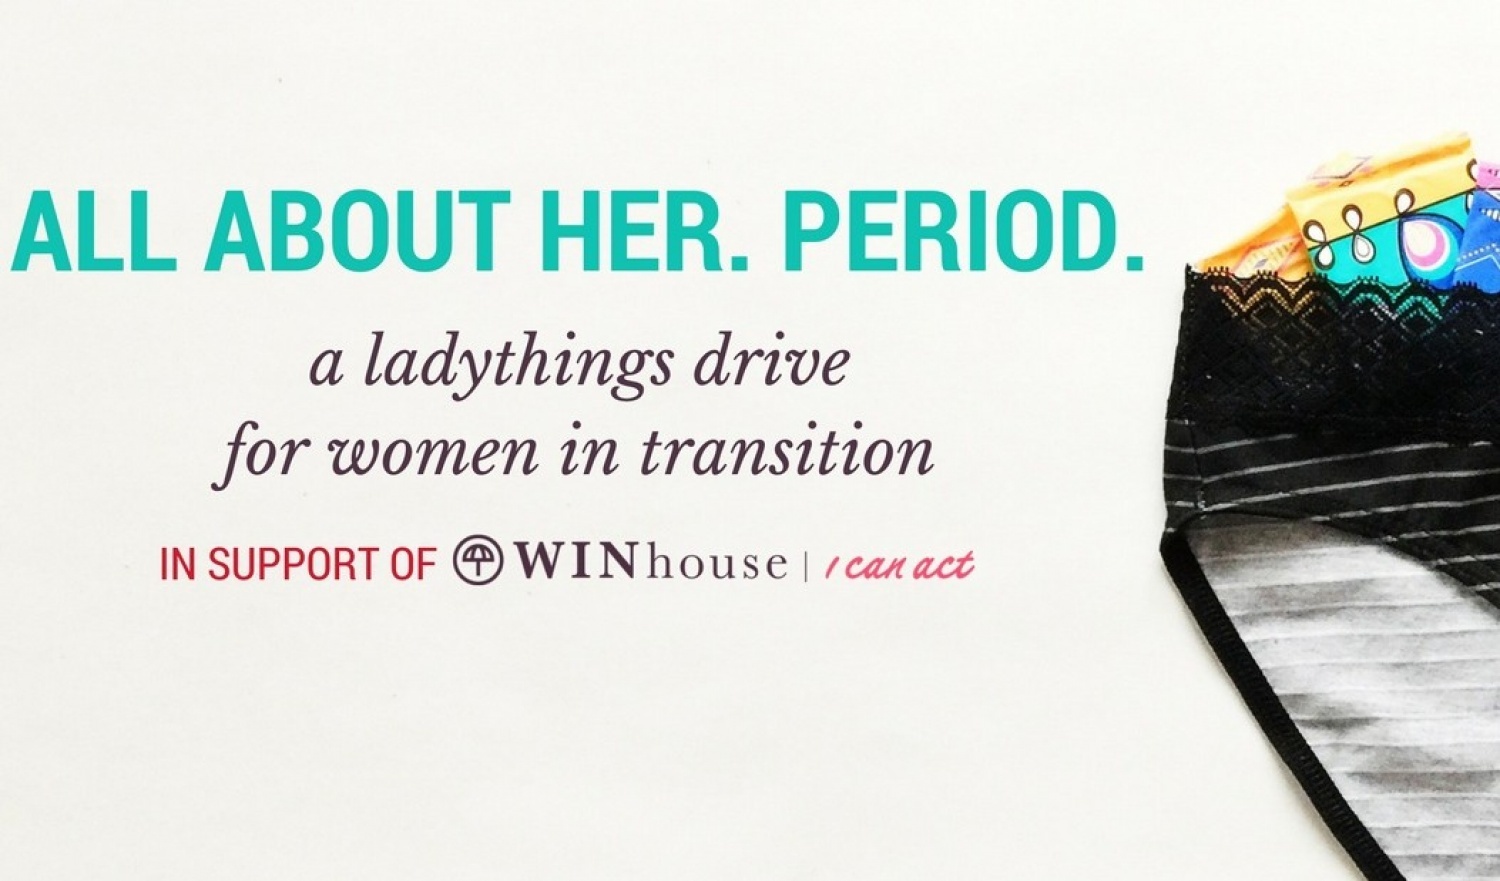 All About Her. Period. | Supporting Women In Need